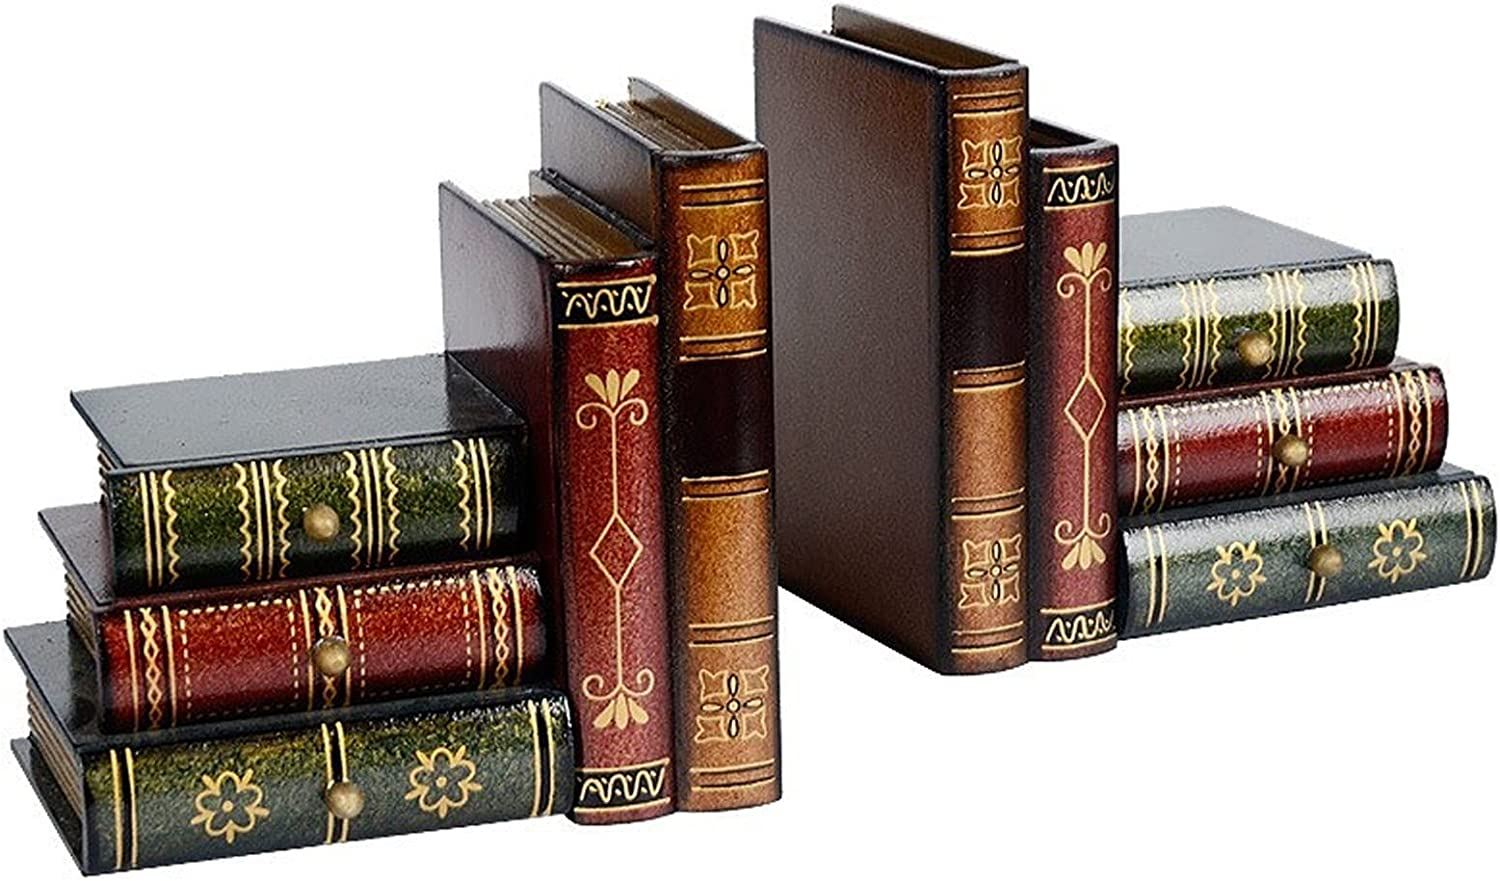 ZXNRTU Vintage Decorative Bookend Stacked Max 78% OFF Bookends Books unisex Wood D